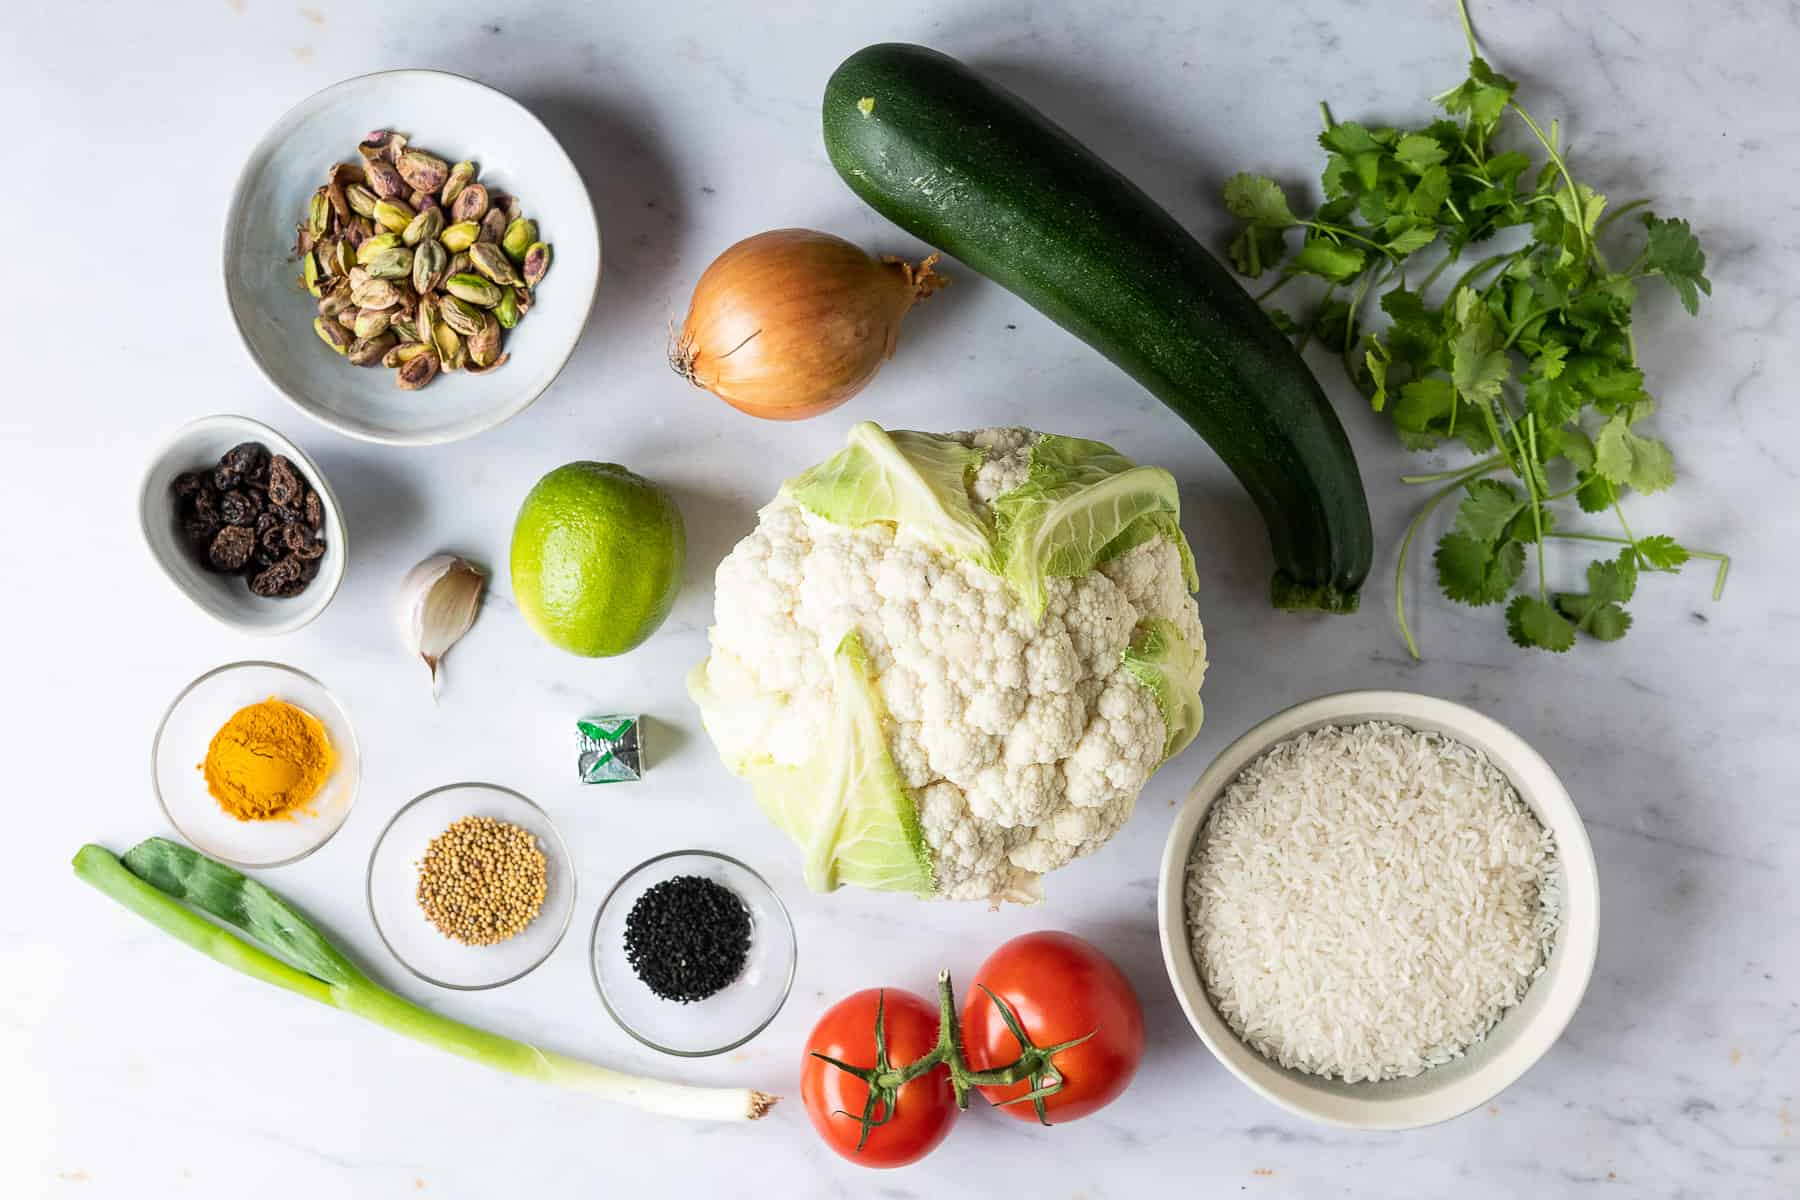 A shot of the ingredients needed to make spiced cauliflower and courgette with yellow rice.